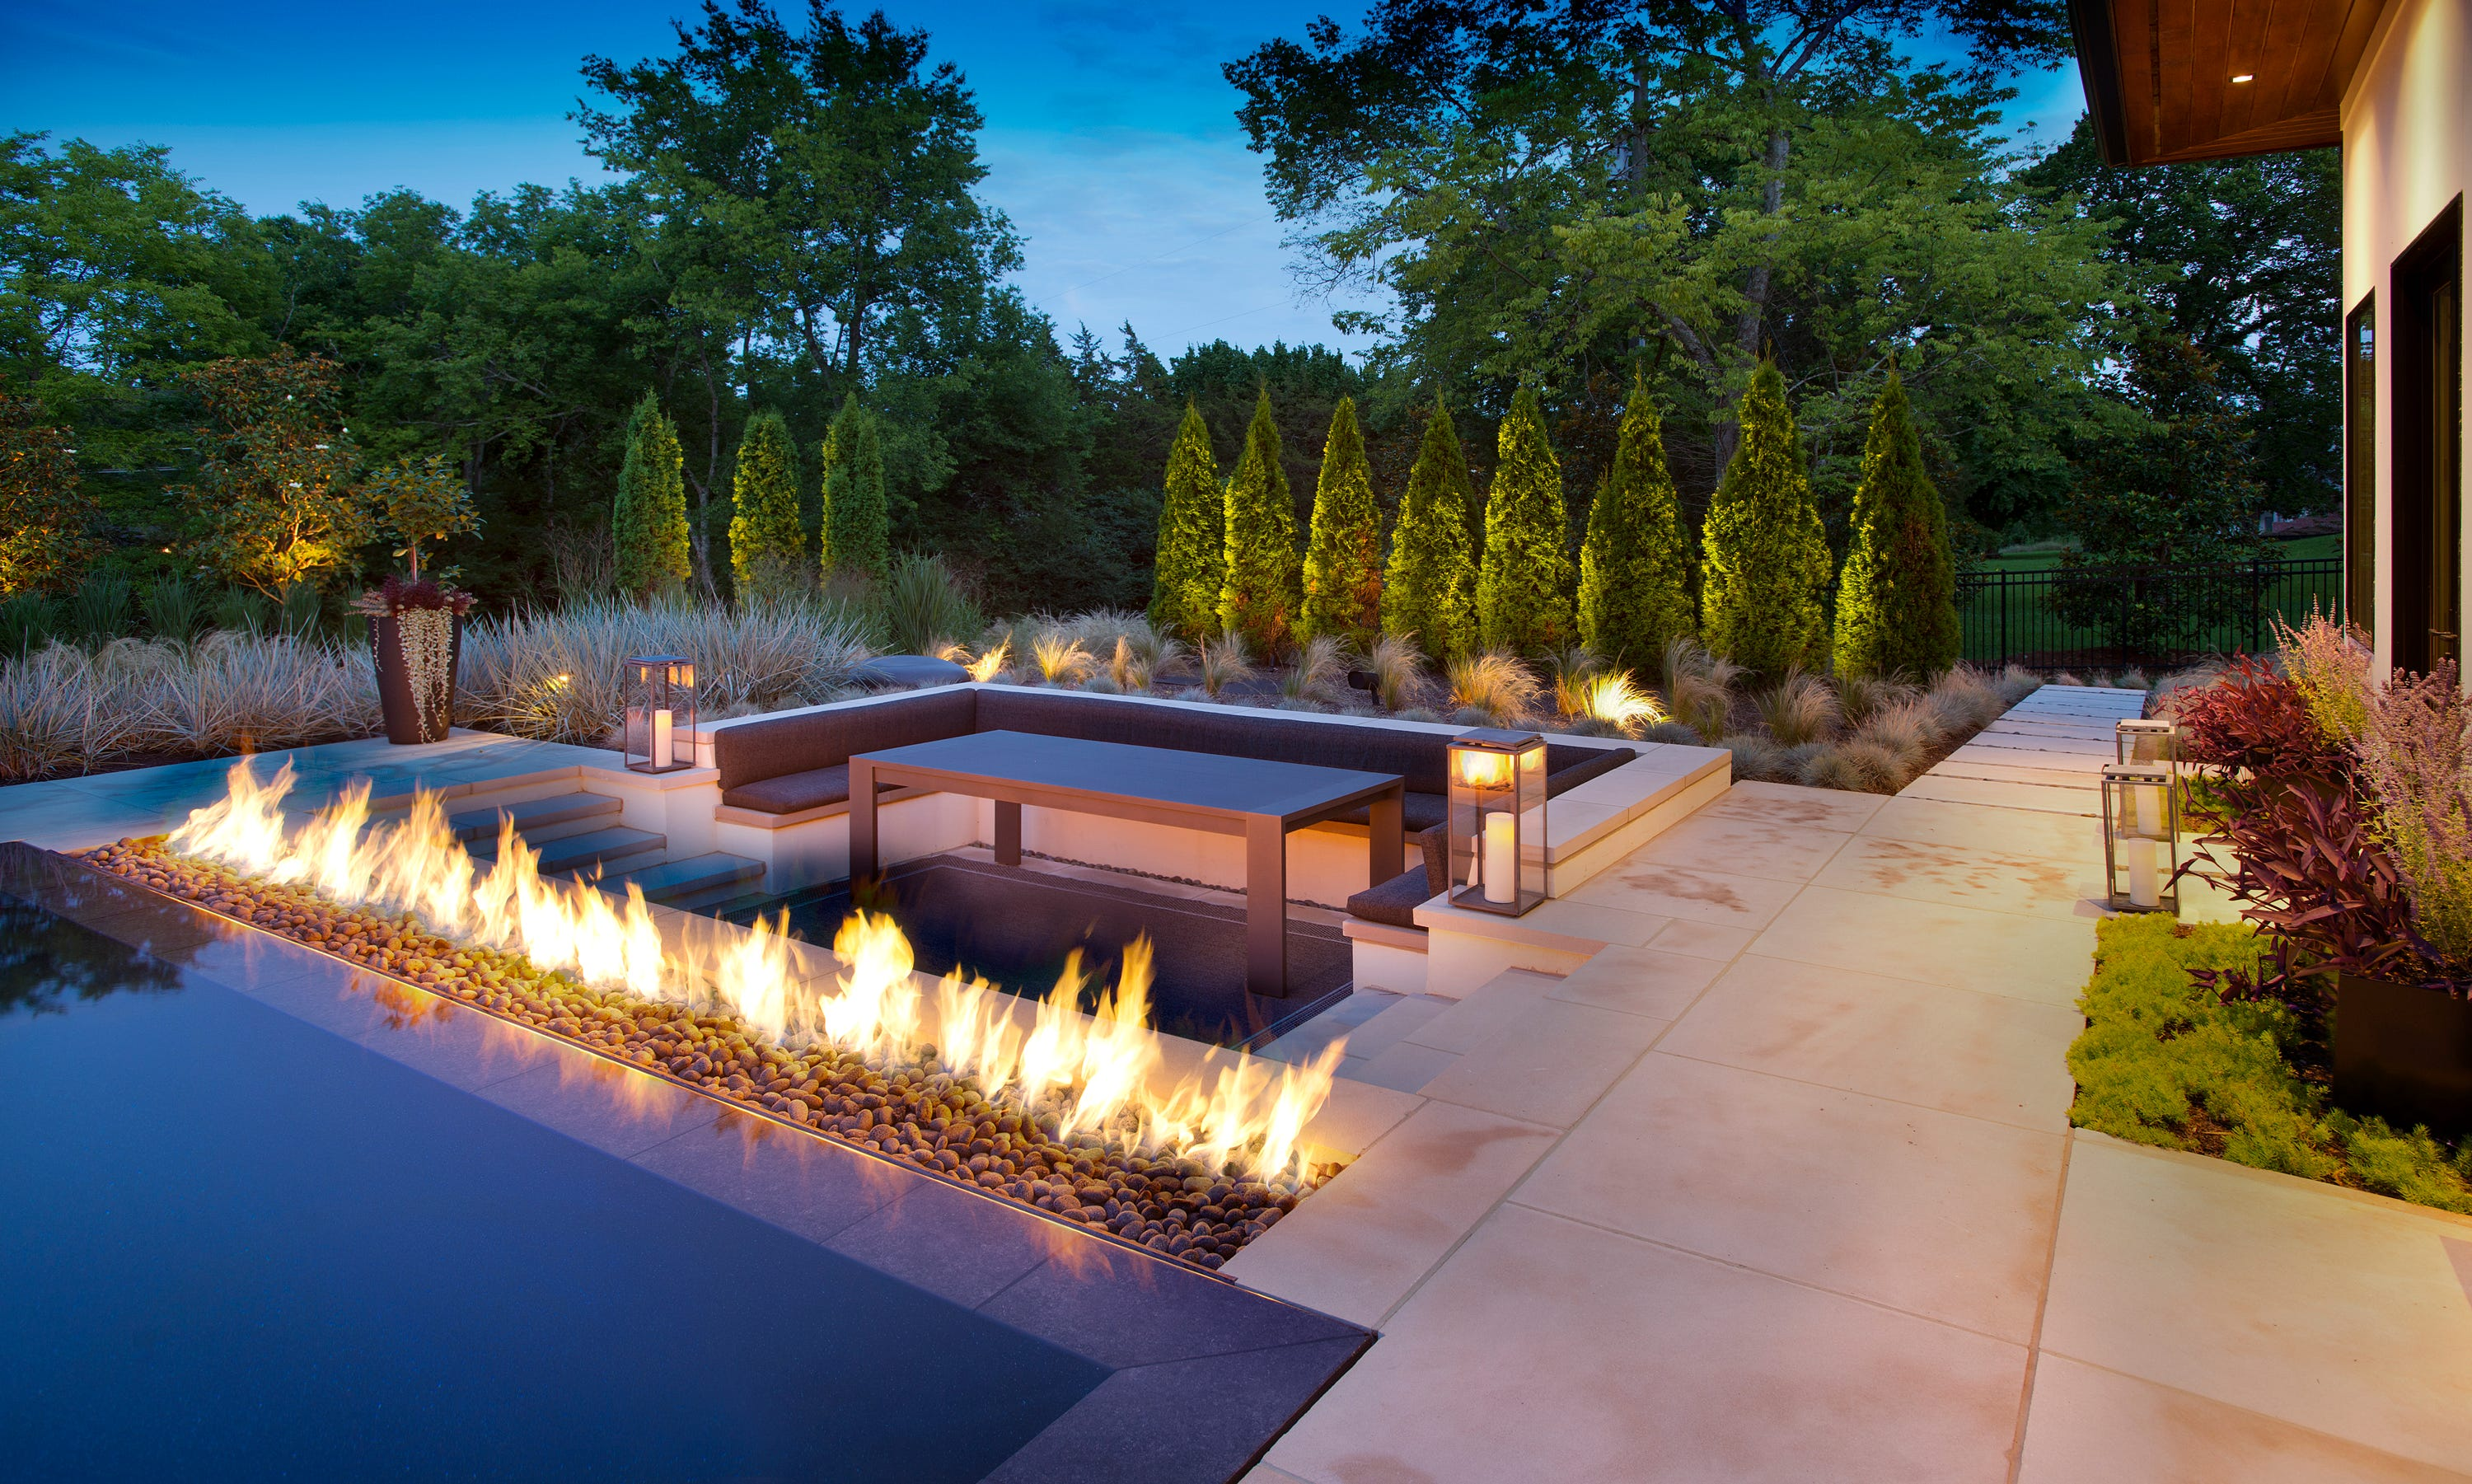 Superieur A Linear Fire Element Was Added To The Outdoor Living